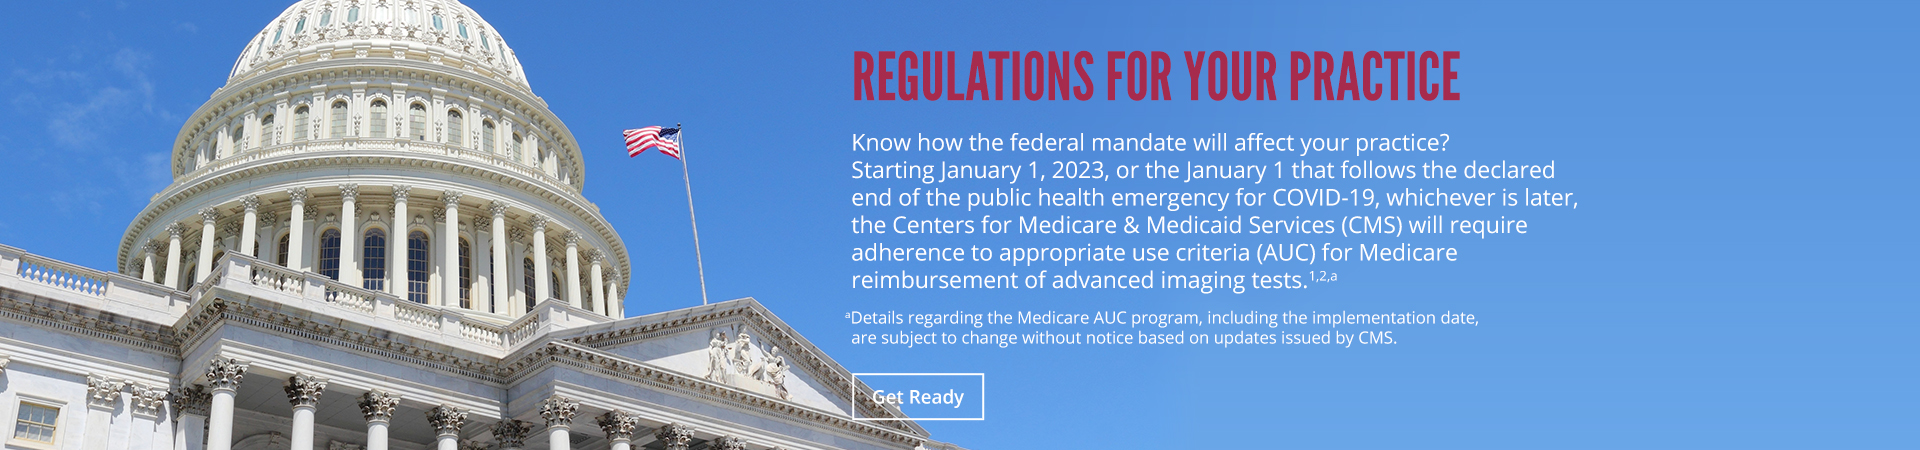 Regulations for your practice. Know how the federal mandate will affect your practice? Soon, the Medicare & Medicaid Services (CMS) will require adherence to appropriate use criteria (AUC) for Medicare reimbusement of advanced imaging tests.